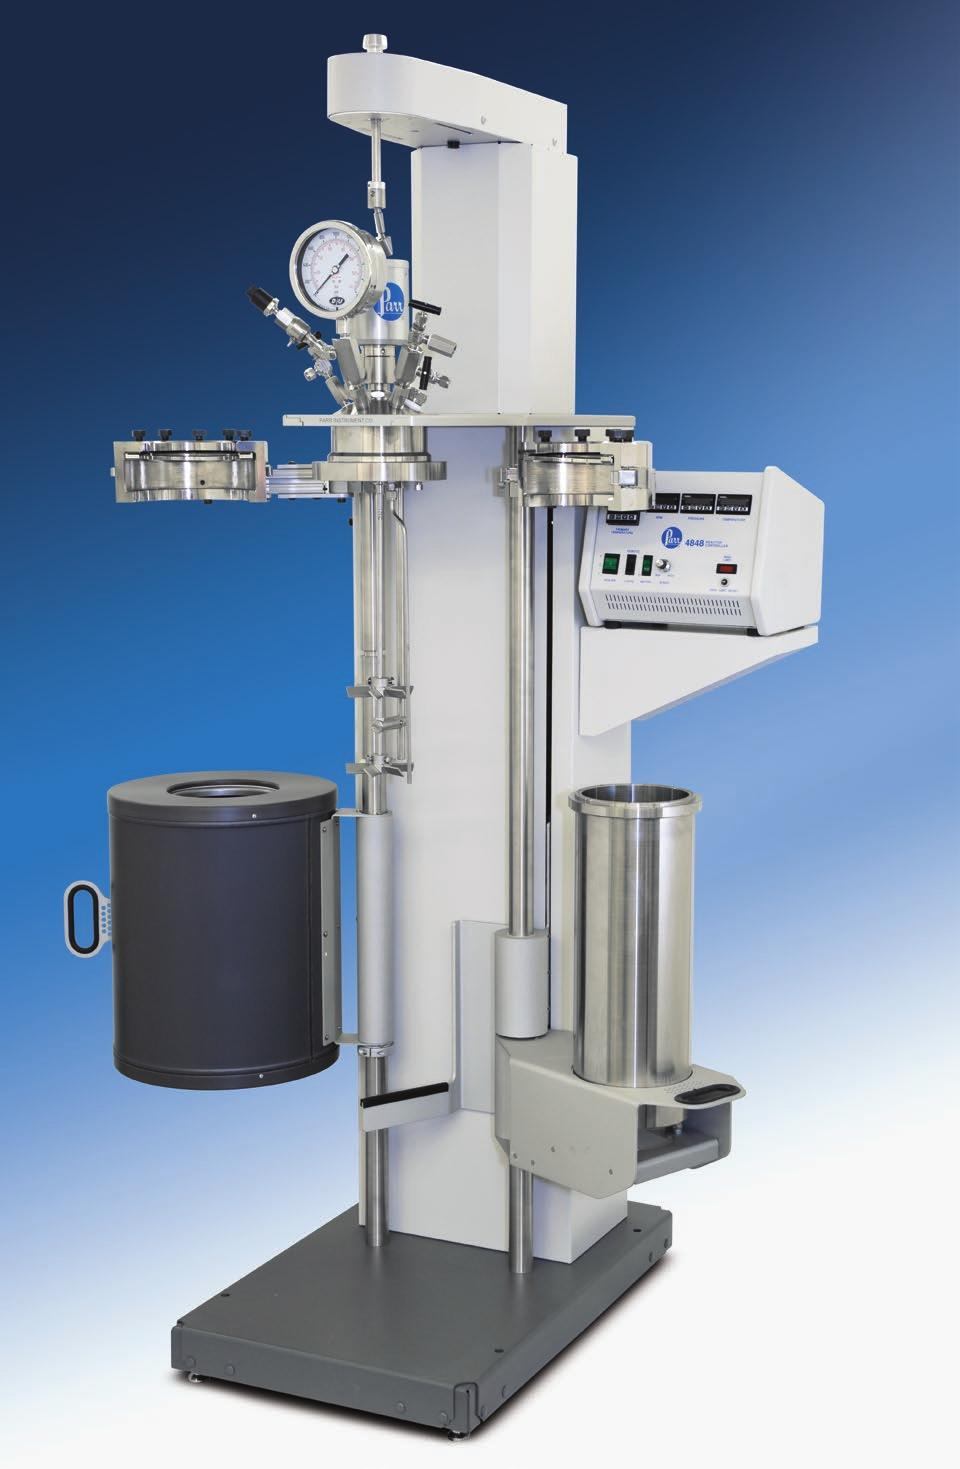 Series 4550 1 & 2 Gallon Reactor Systems Series Number: 4550 Type: General Purpose Stand: Floor Stand Vessel Mounting: Moveable or Fixed Head Vessel Sizes, Gallons: 1 and 2 Standard Pressure MAWP